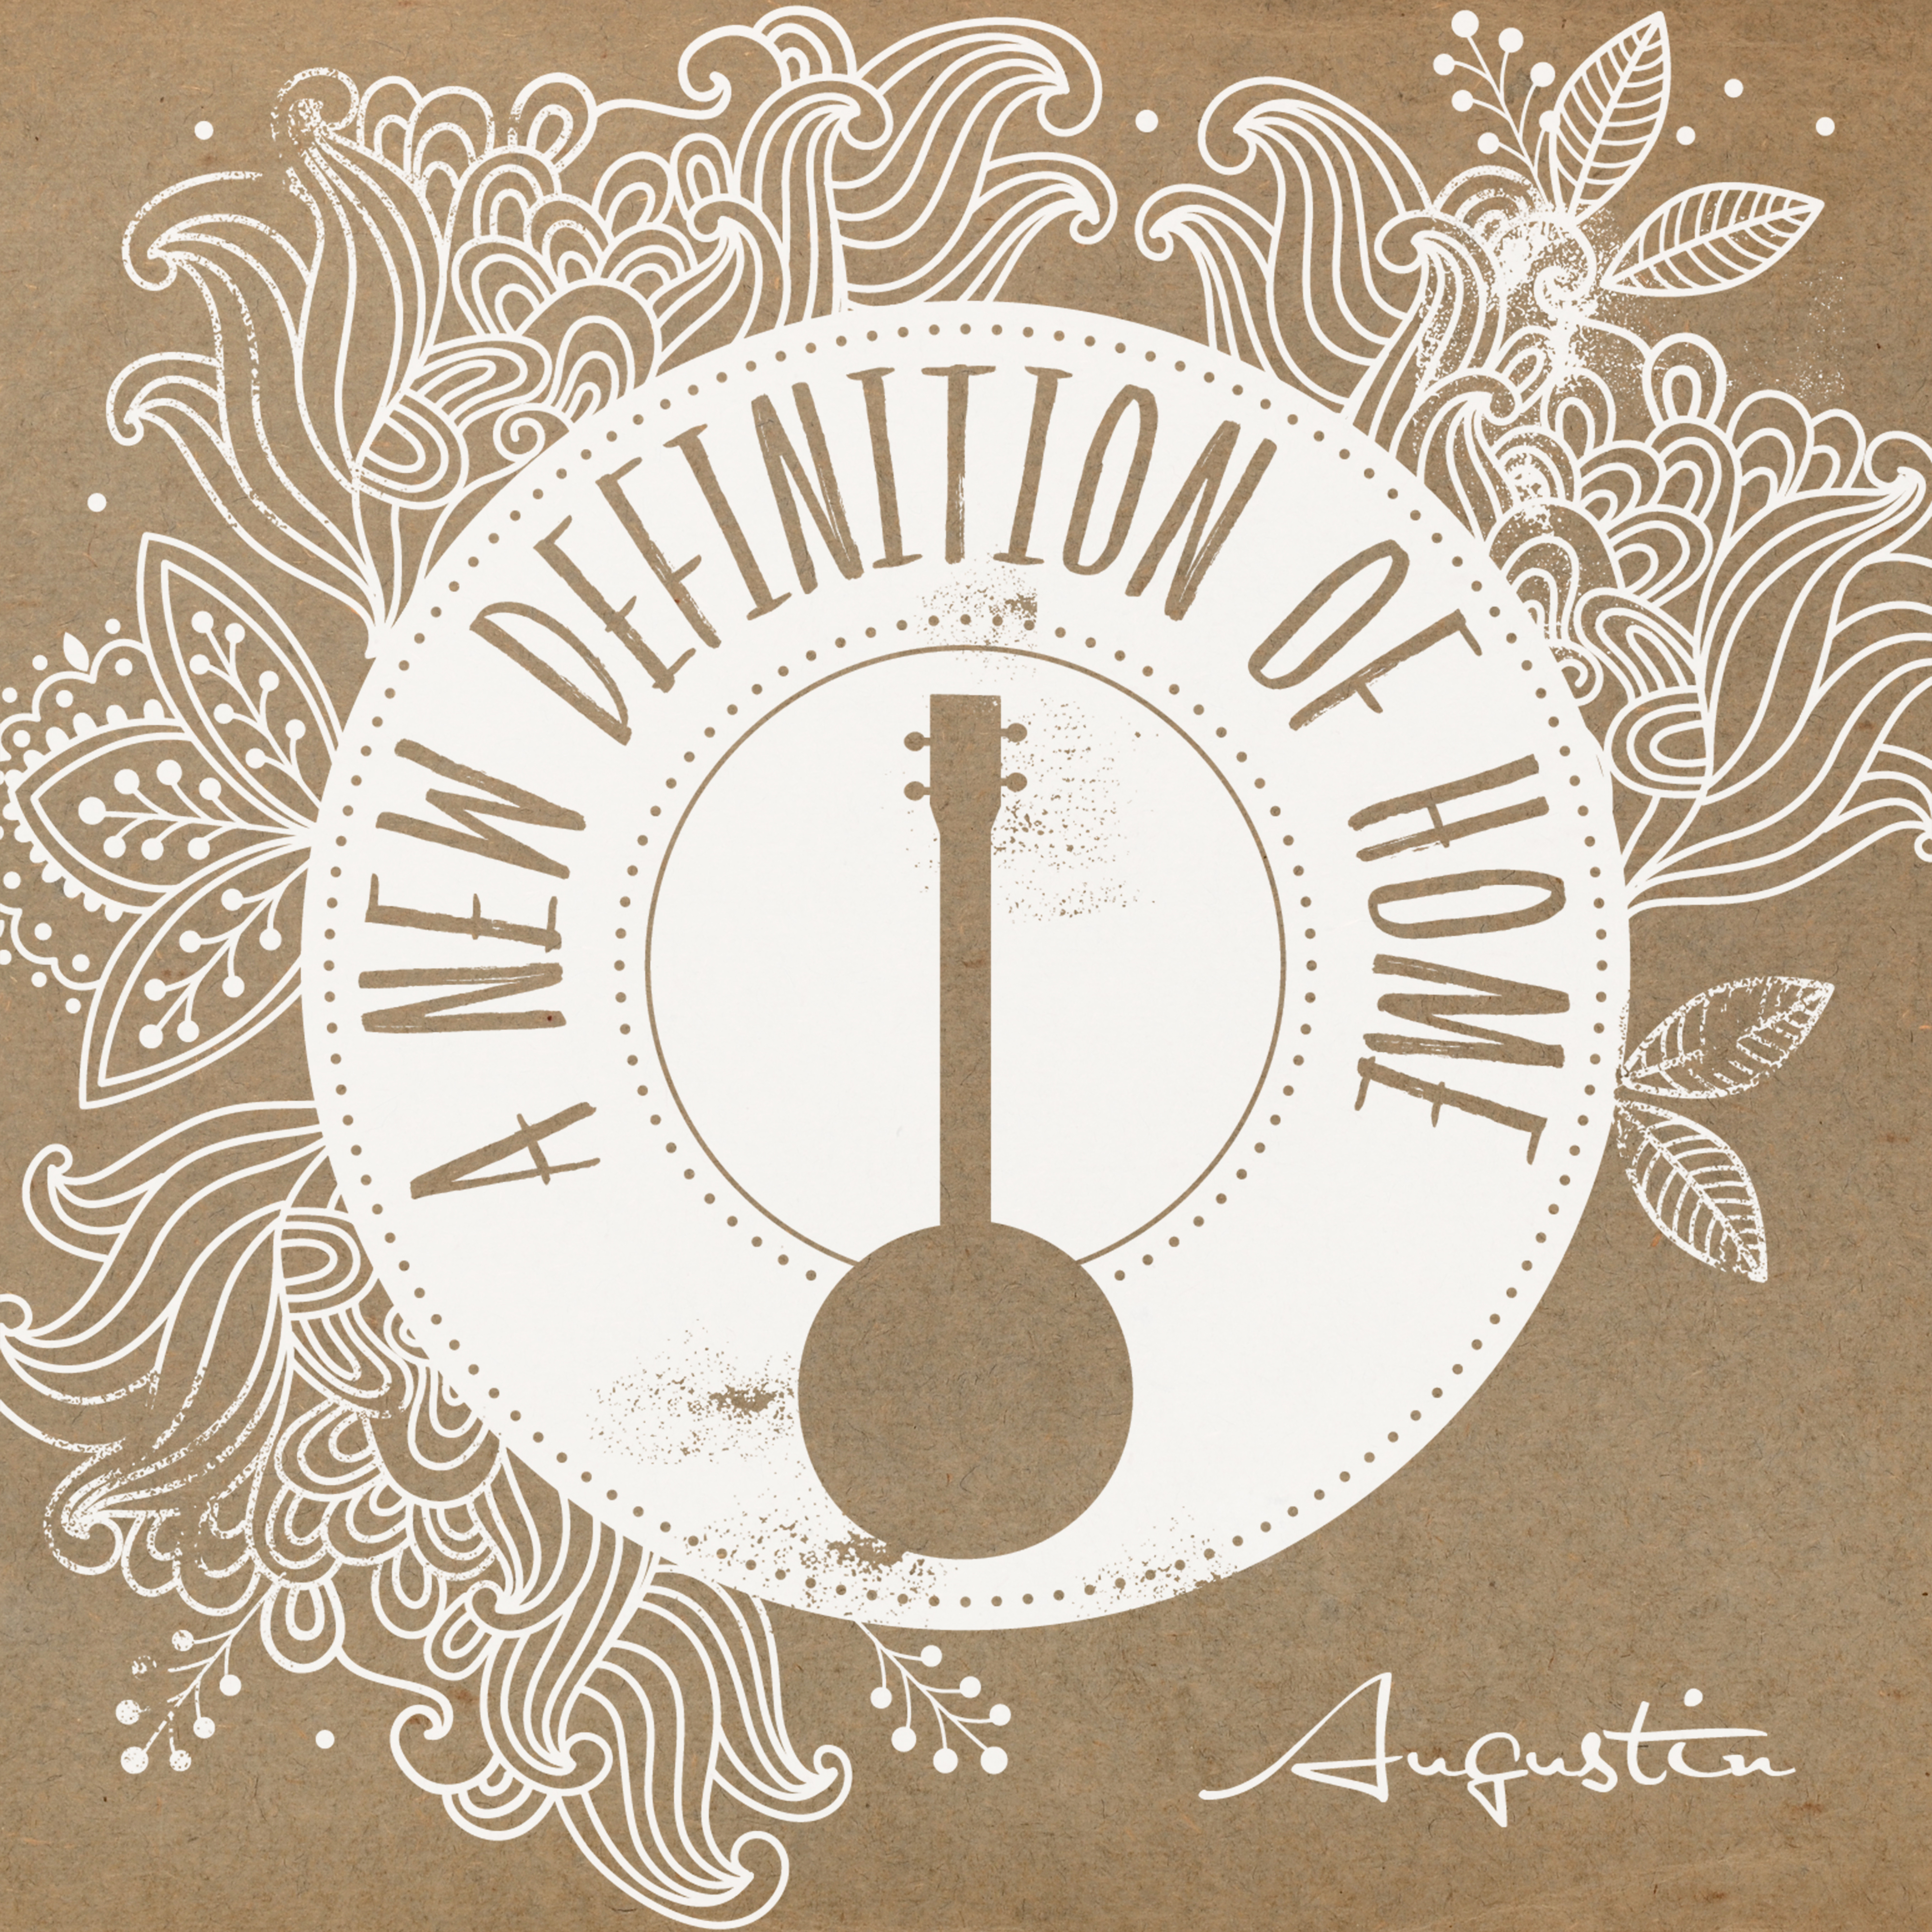 Augustin - A New Definition of Home